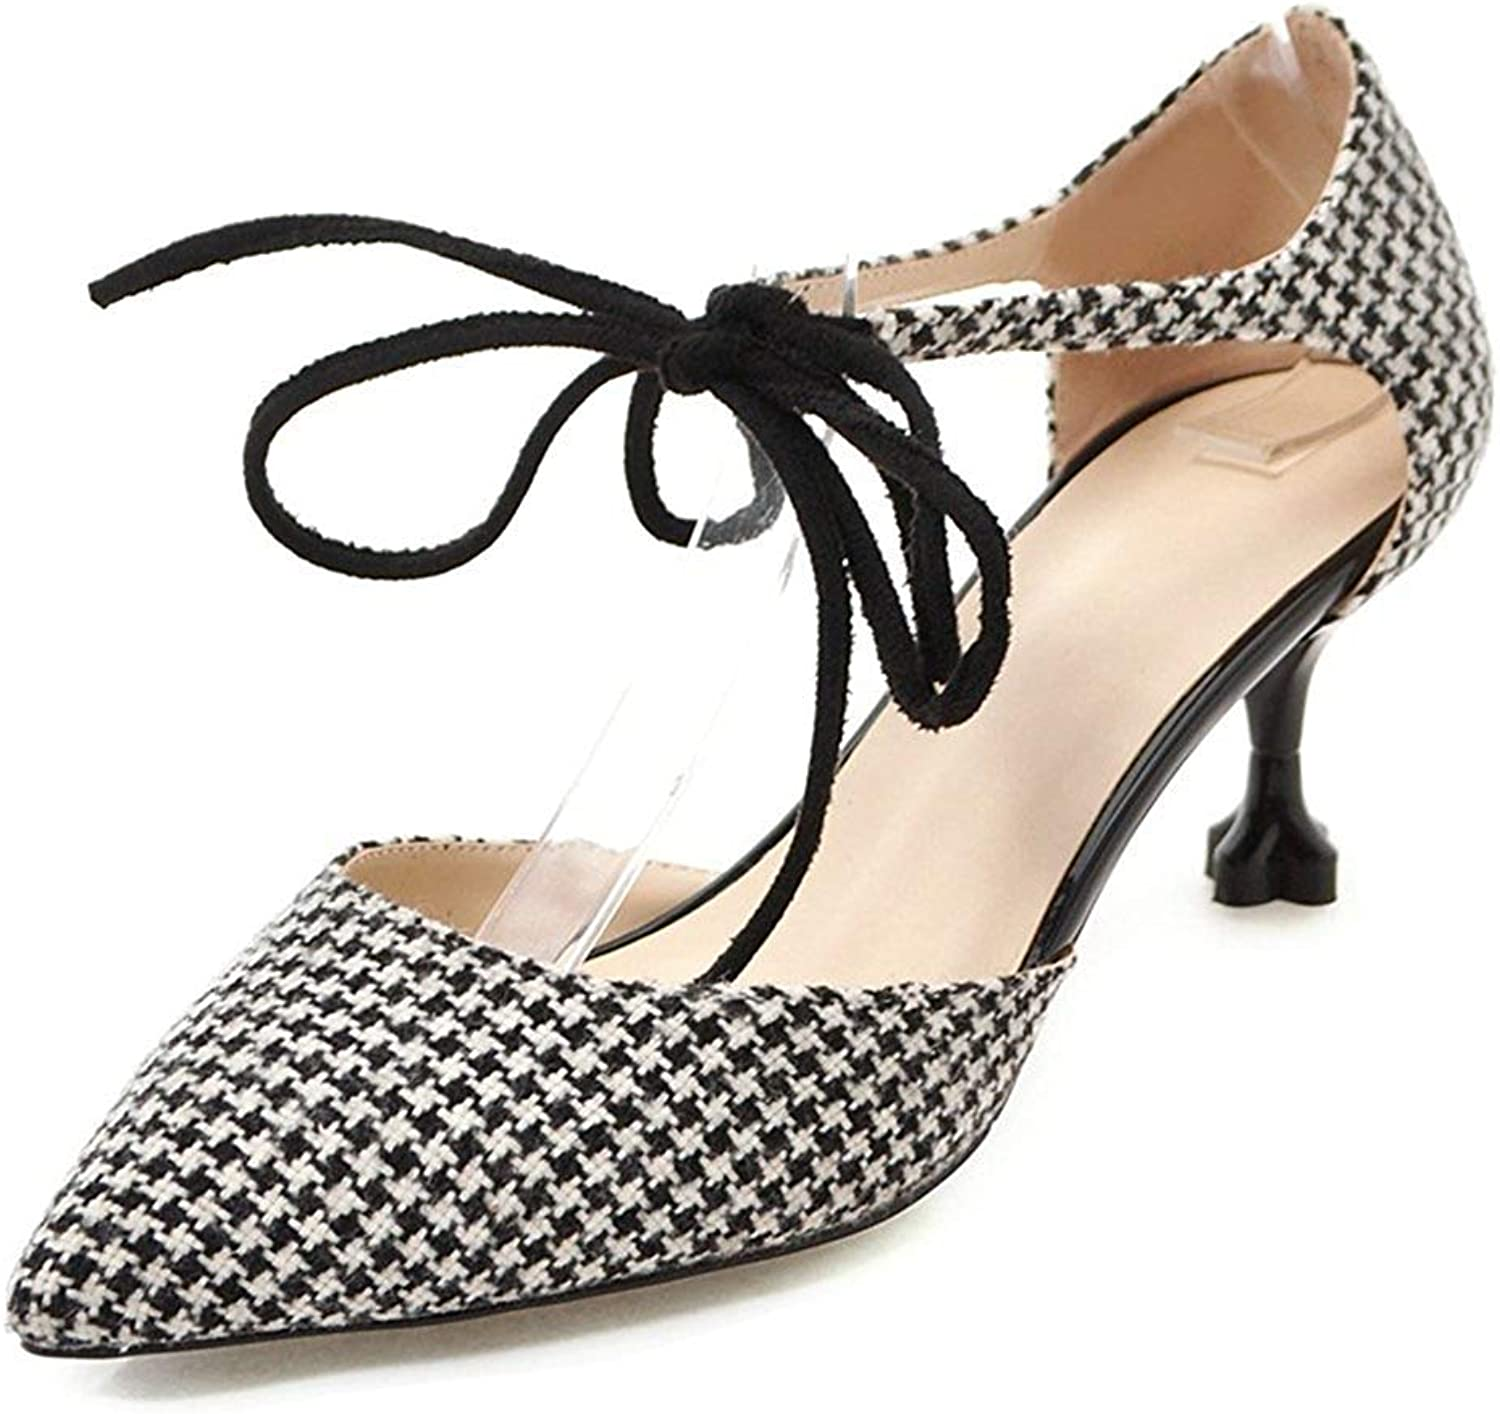 Ghssheh Women's Classic Checkered Pointy Toe Kitten Heels Sandals Black 2 5 M US